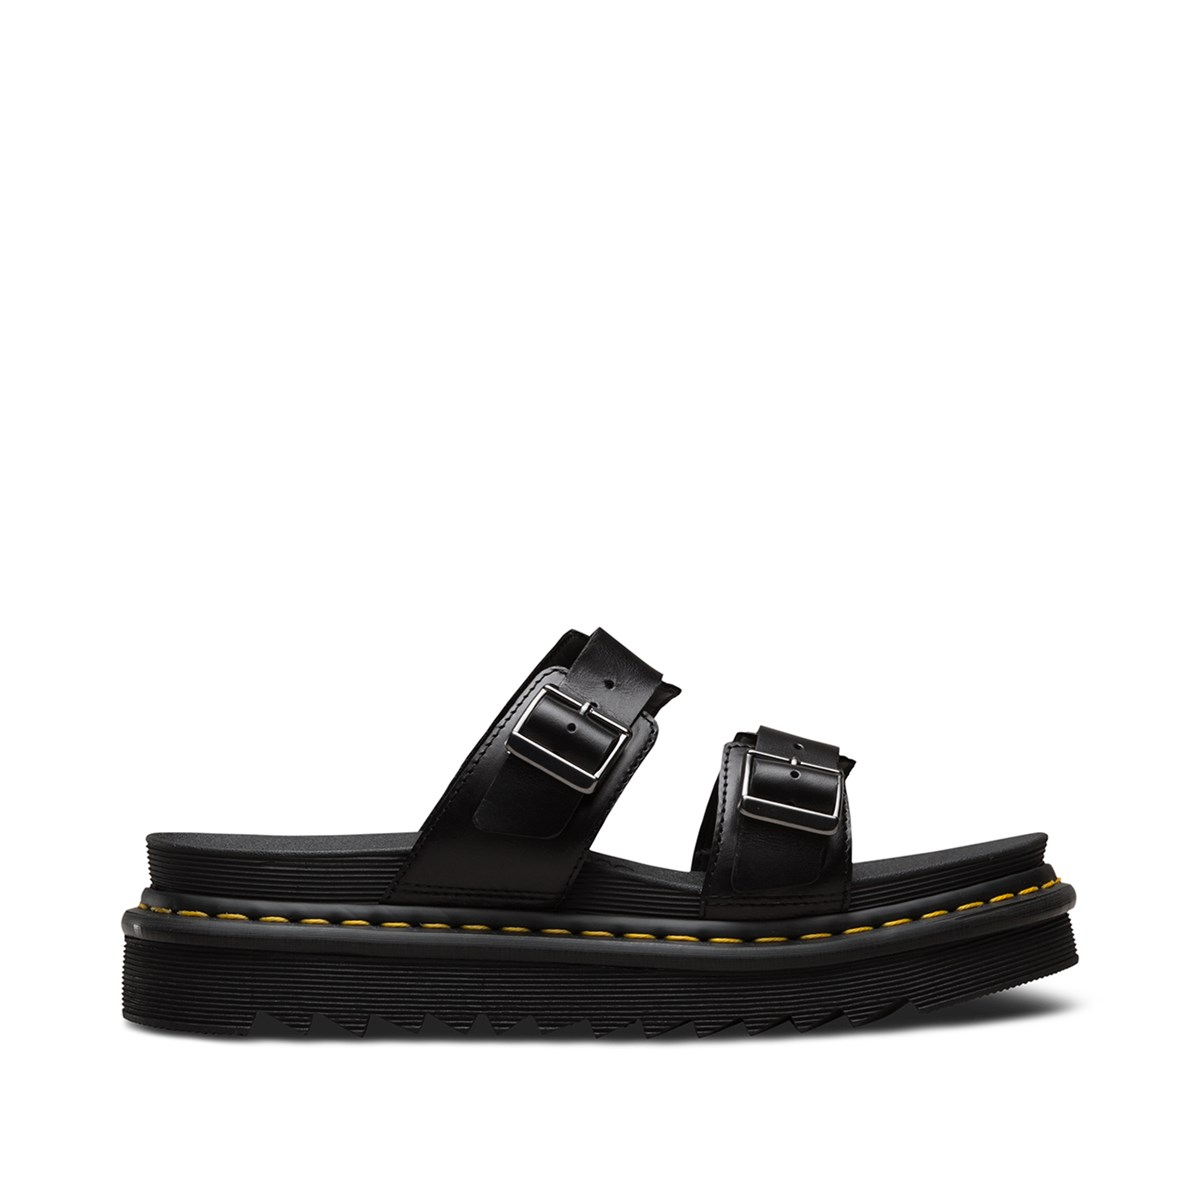 Women's Myles Sandal in Black